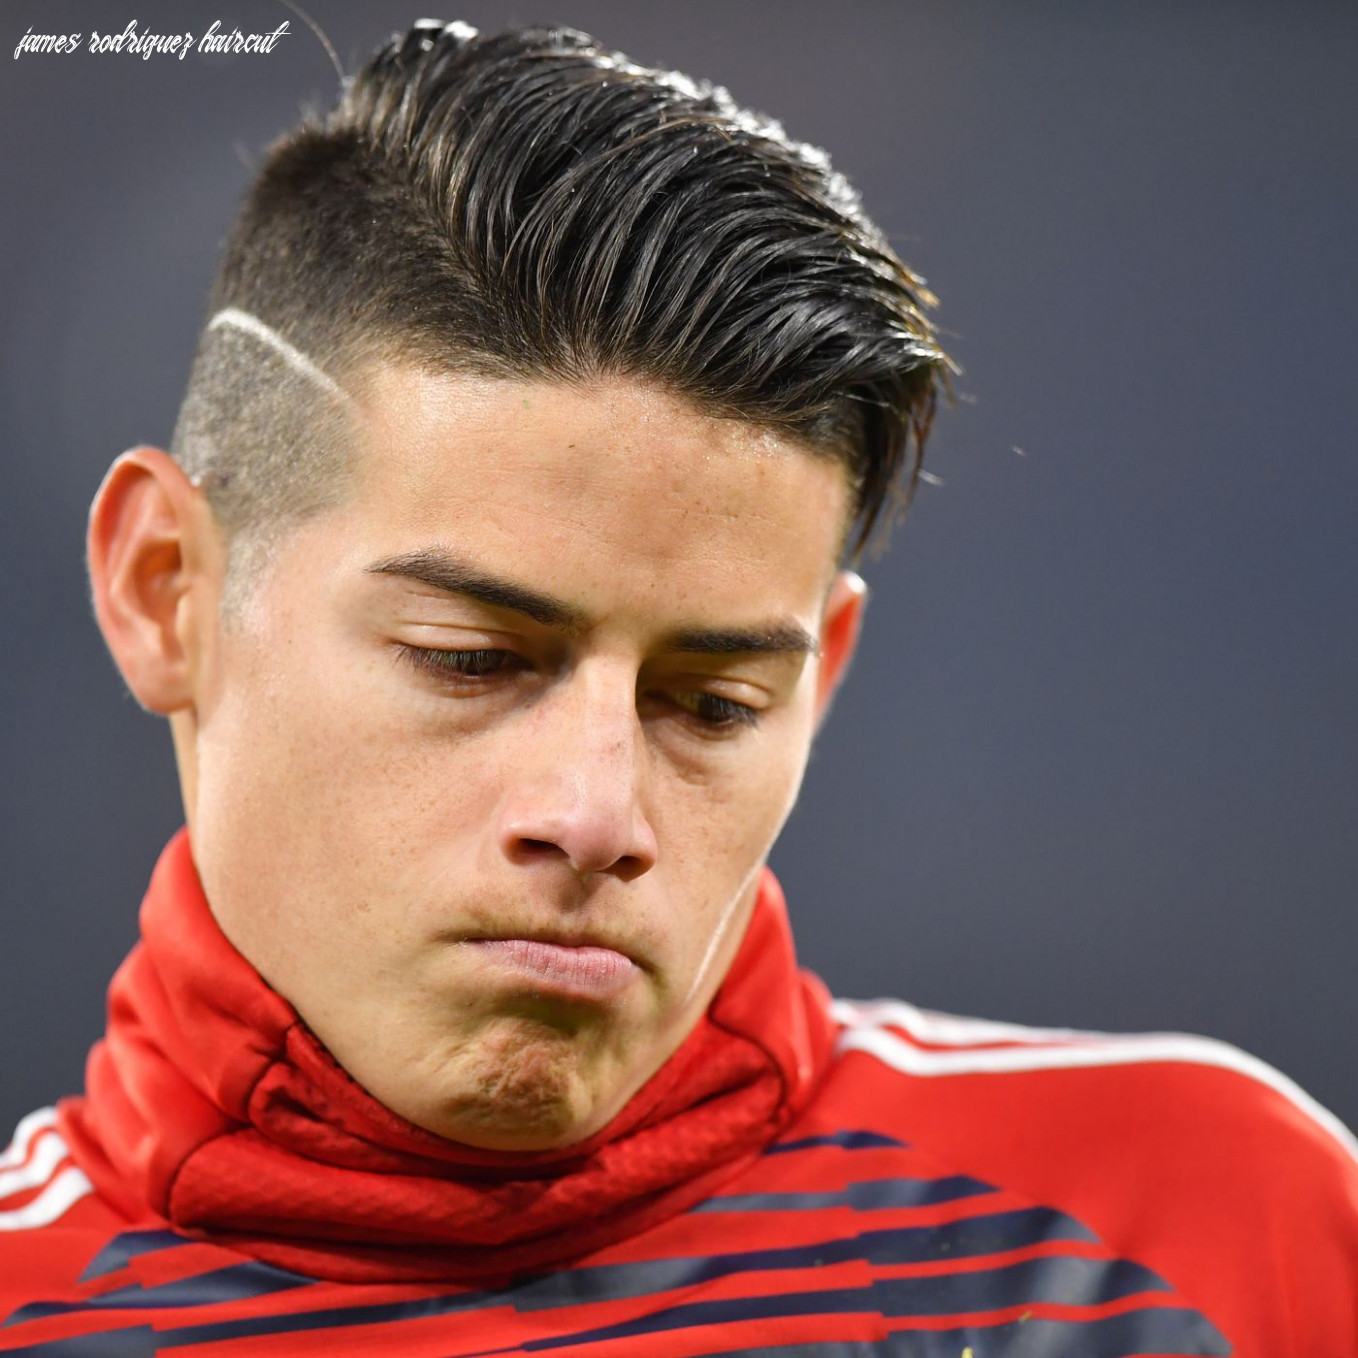 Injury update: james rodriguez was subbed off vs besiktas due to